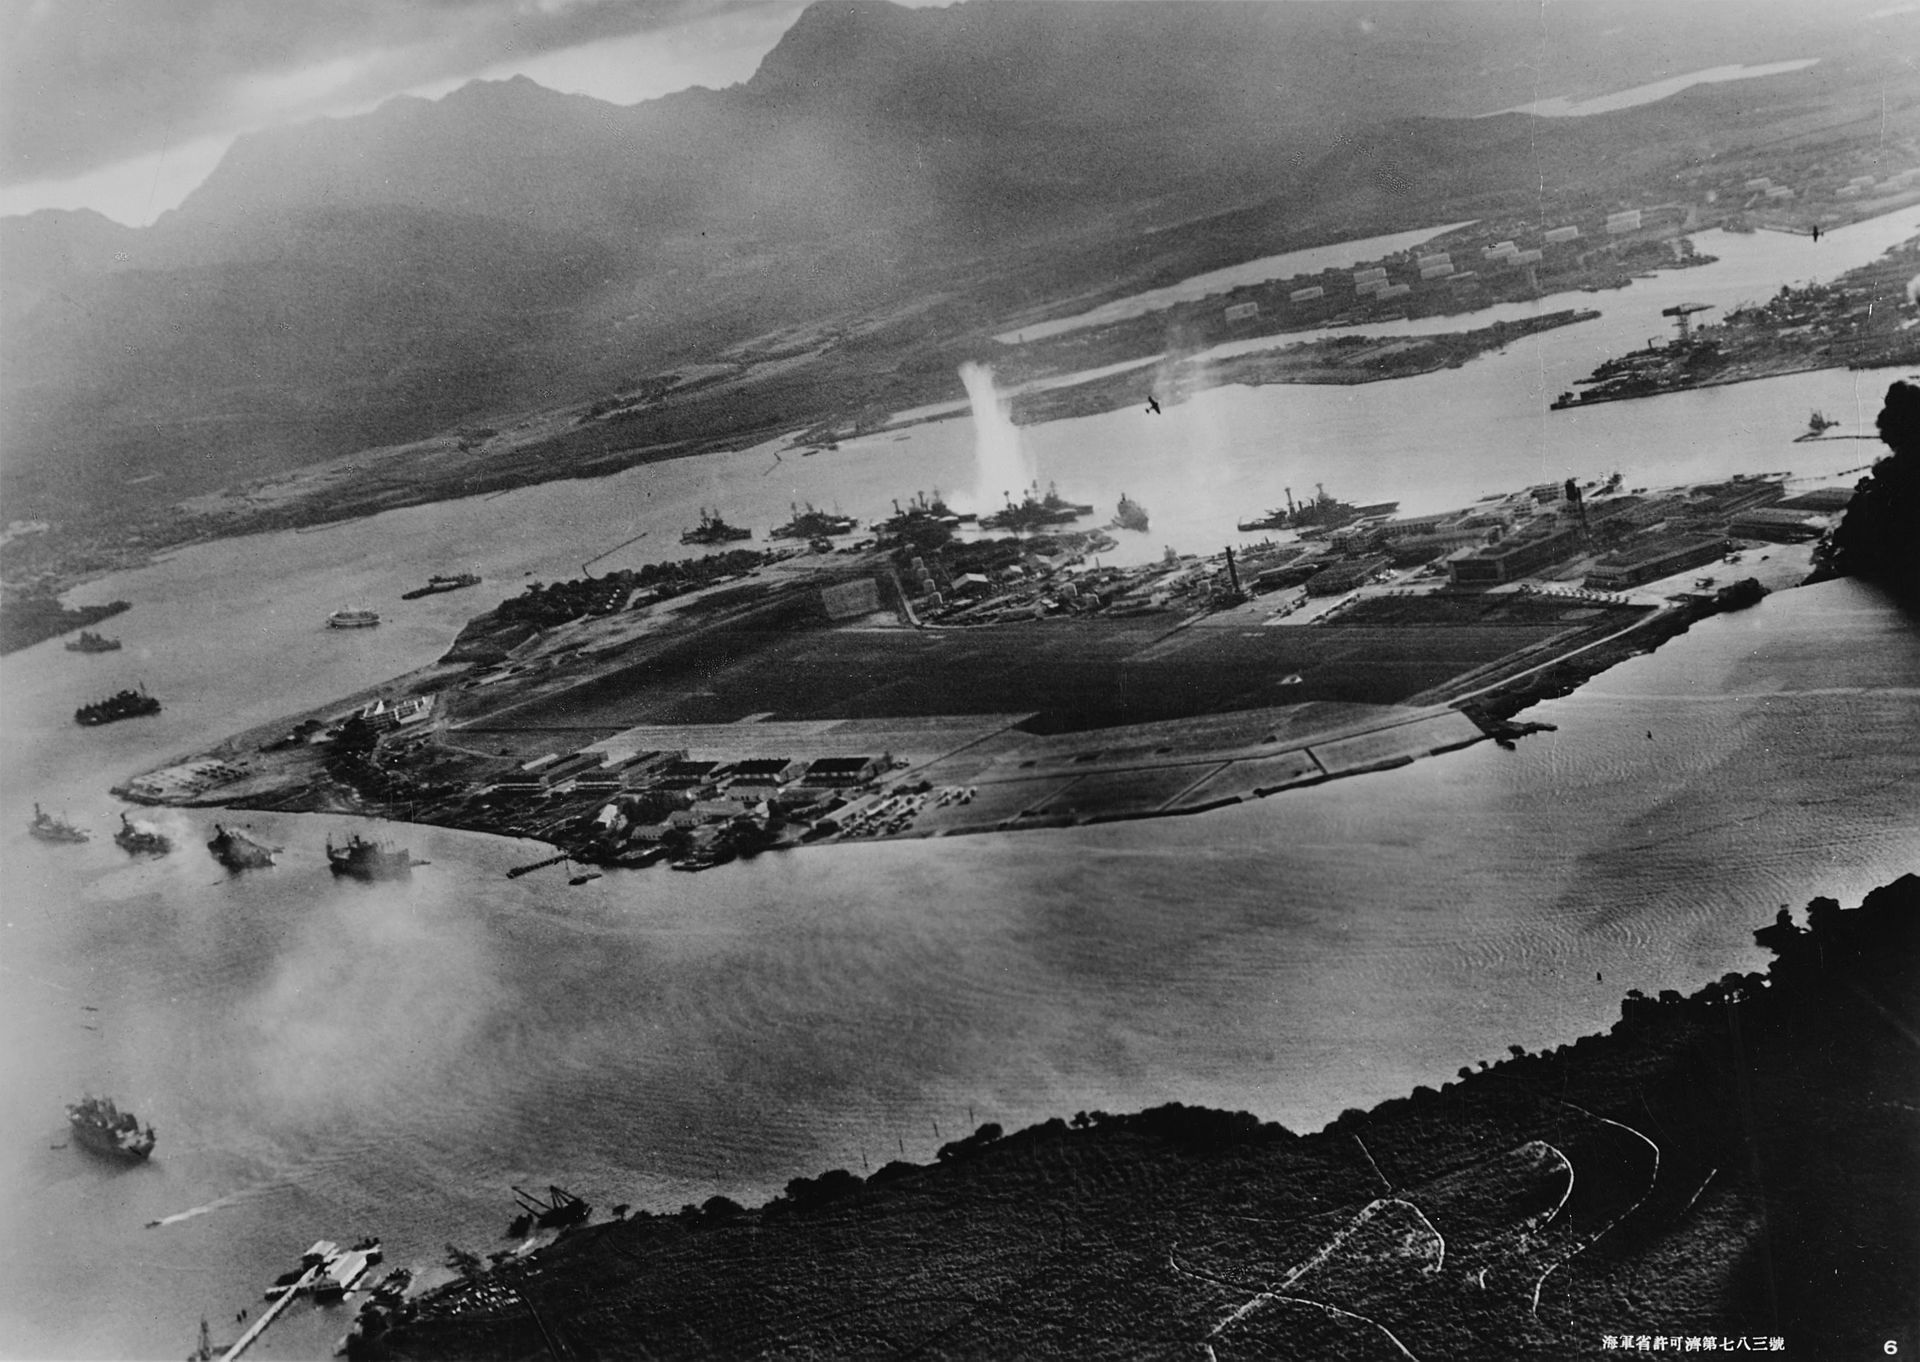 Initial view of the attack from a Japanese airplane.